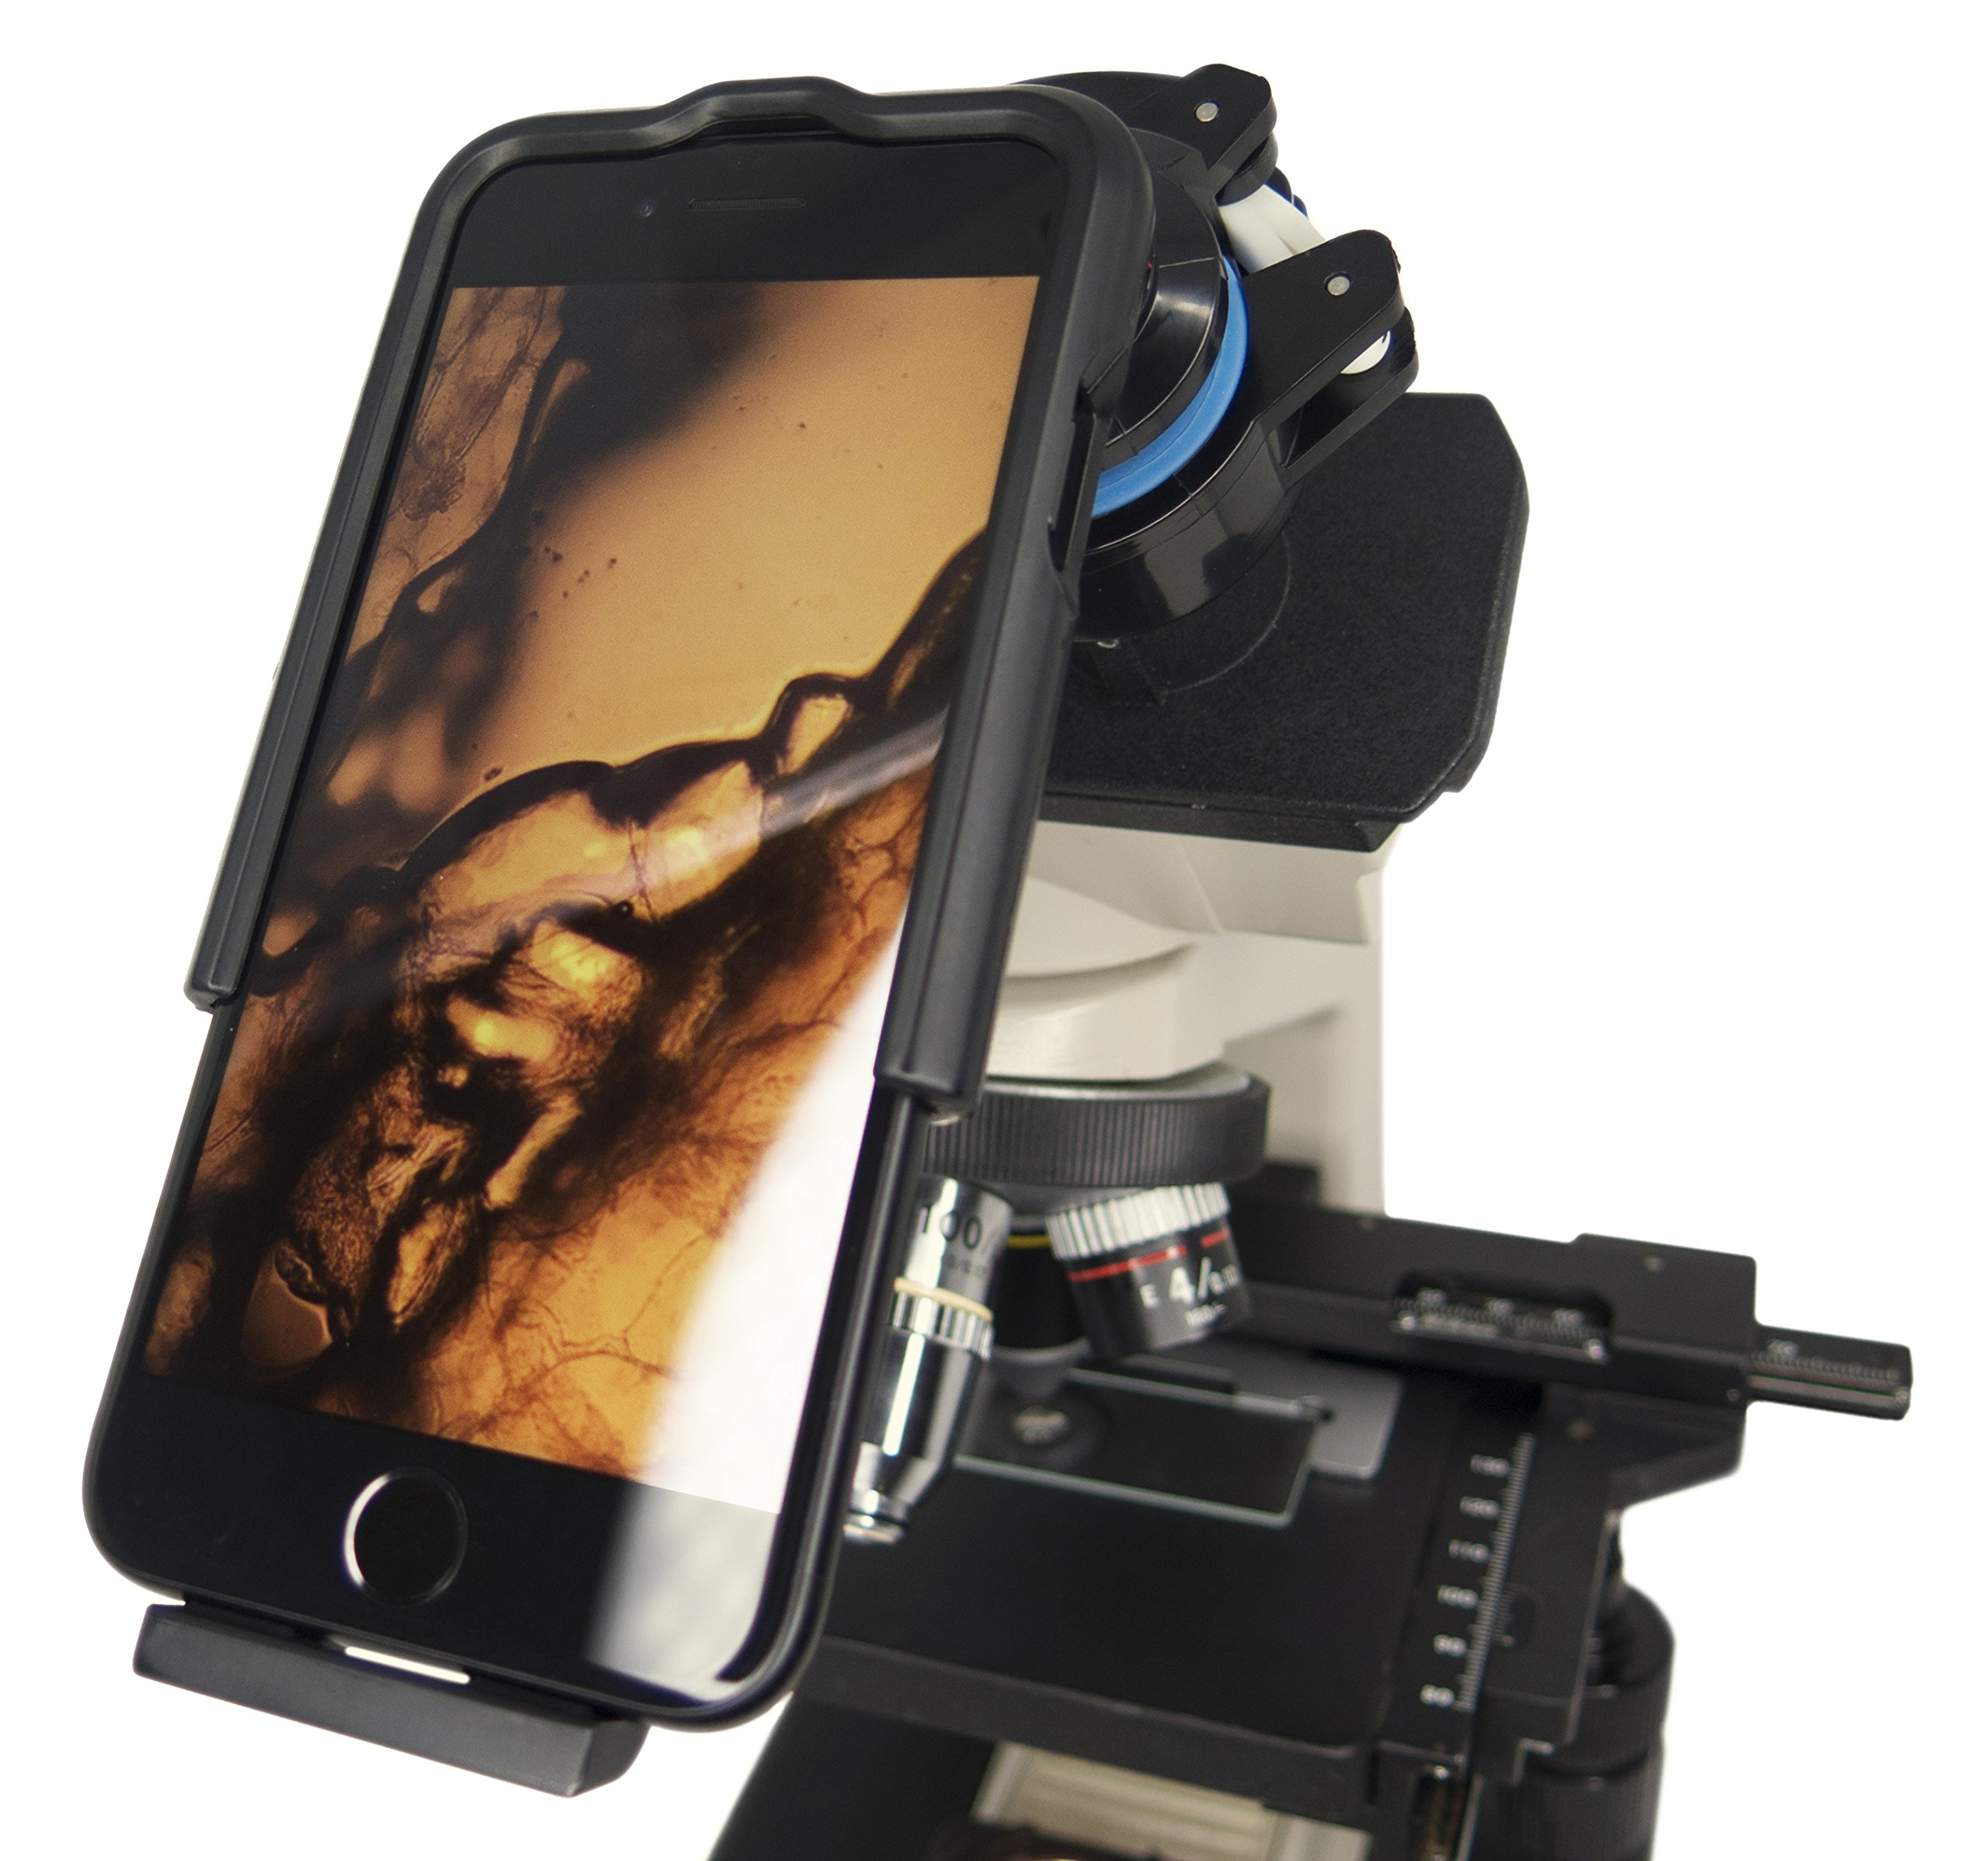 Magnifi 2 for iPhone 7 and 8 - Photo Adapter Case for Microscopes, Telescopes, Binoculars, and Other Optical Instruments